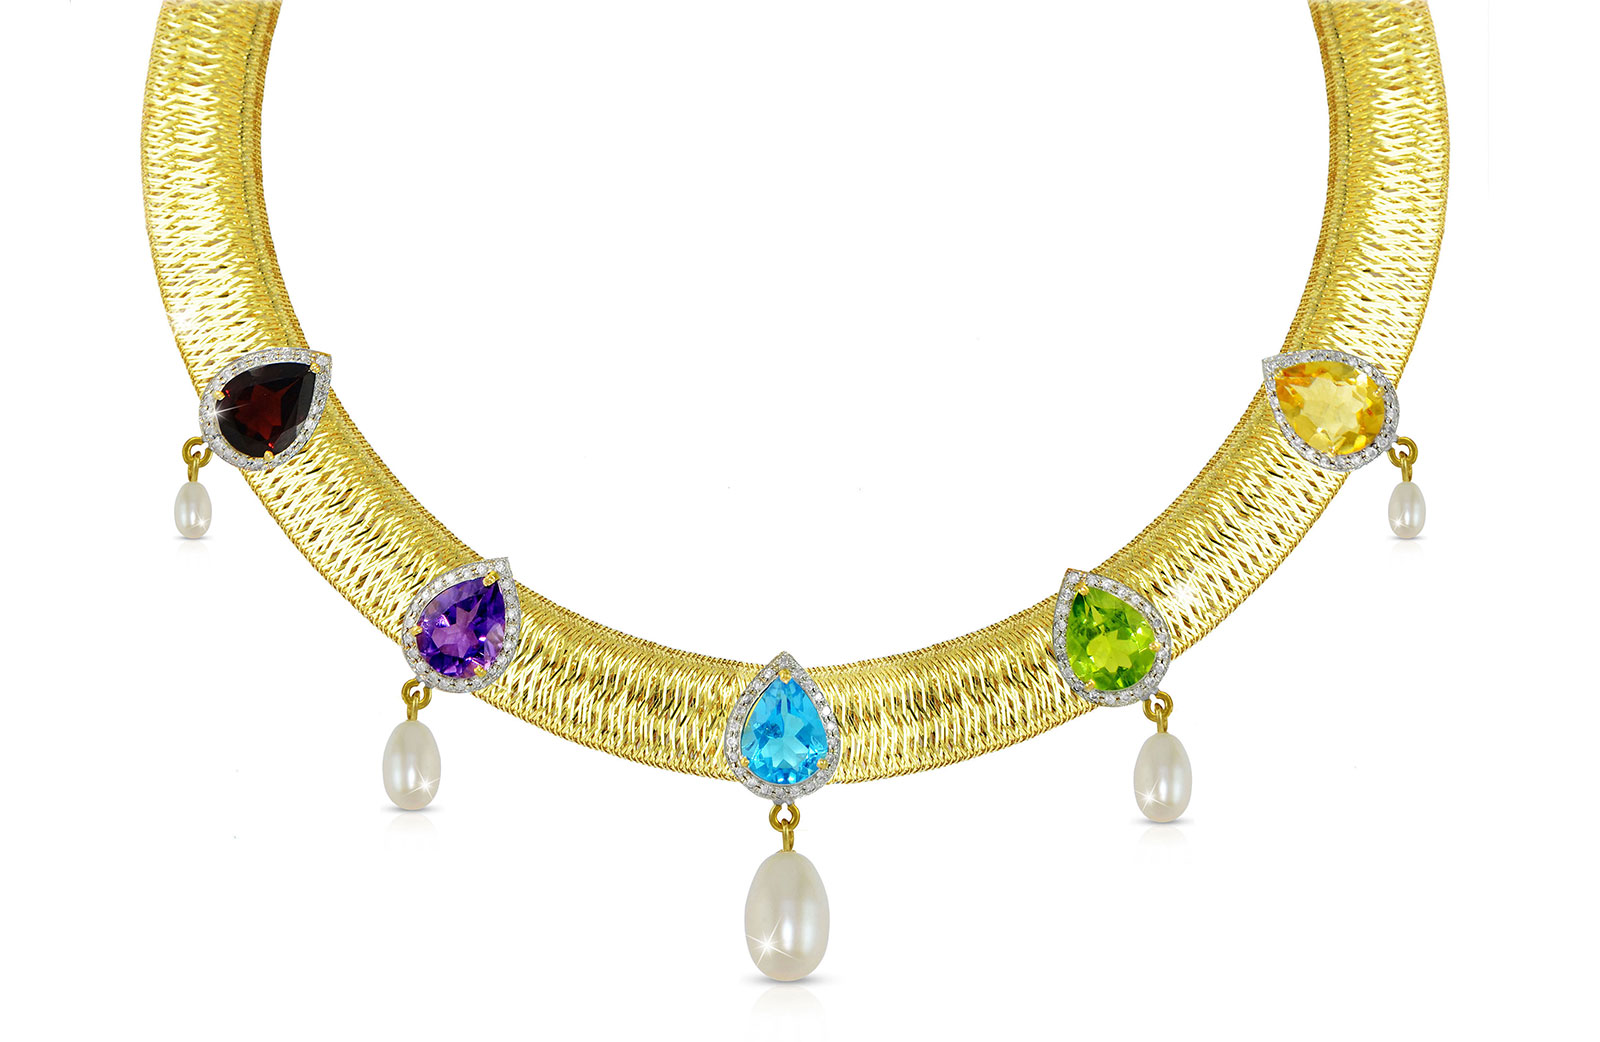 Vera Perla 18k Solid Gold 0.64Ct Genuine Diamonds and Multi-Gemstones with 7mm-13mm Pearls Mesh Necklace